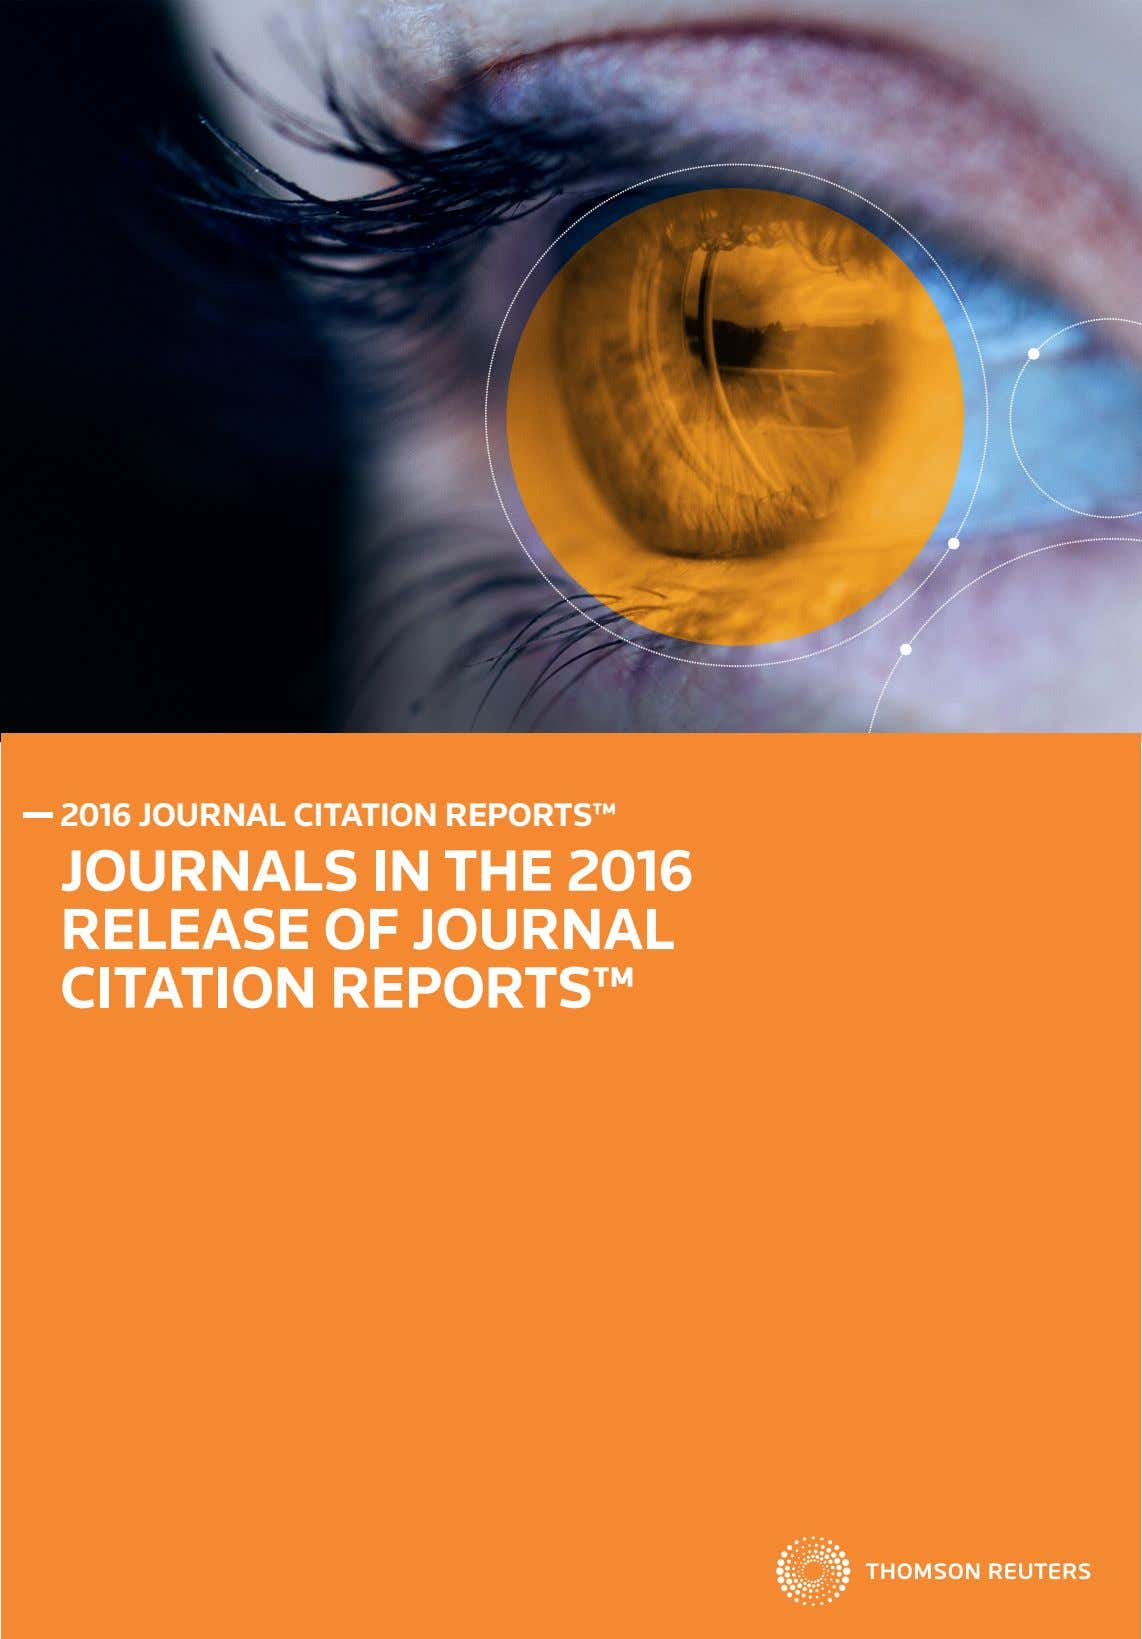 2016 JOURNAL CITATION REPORTS™ JOURNALS IN THE 2016 RELEASE OF JOURNAL CITATION REPORTS™